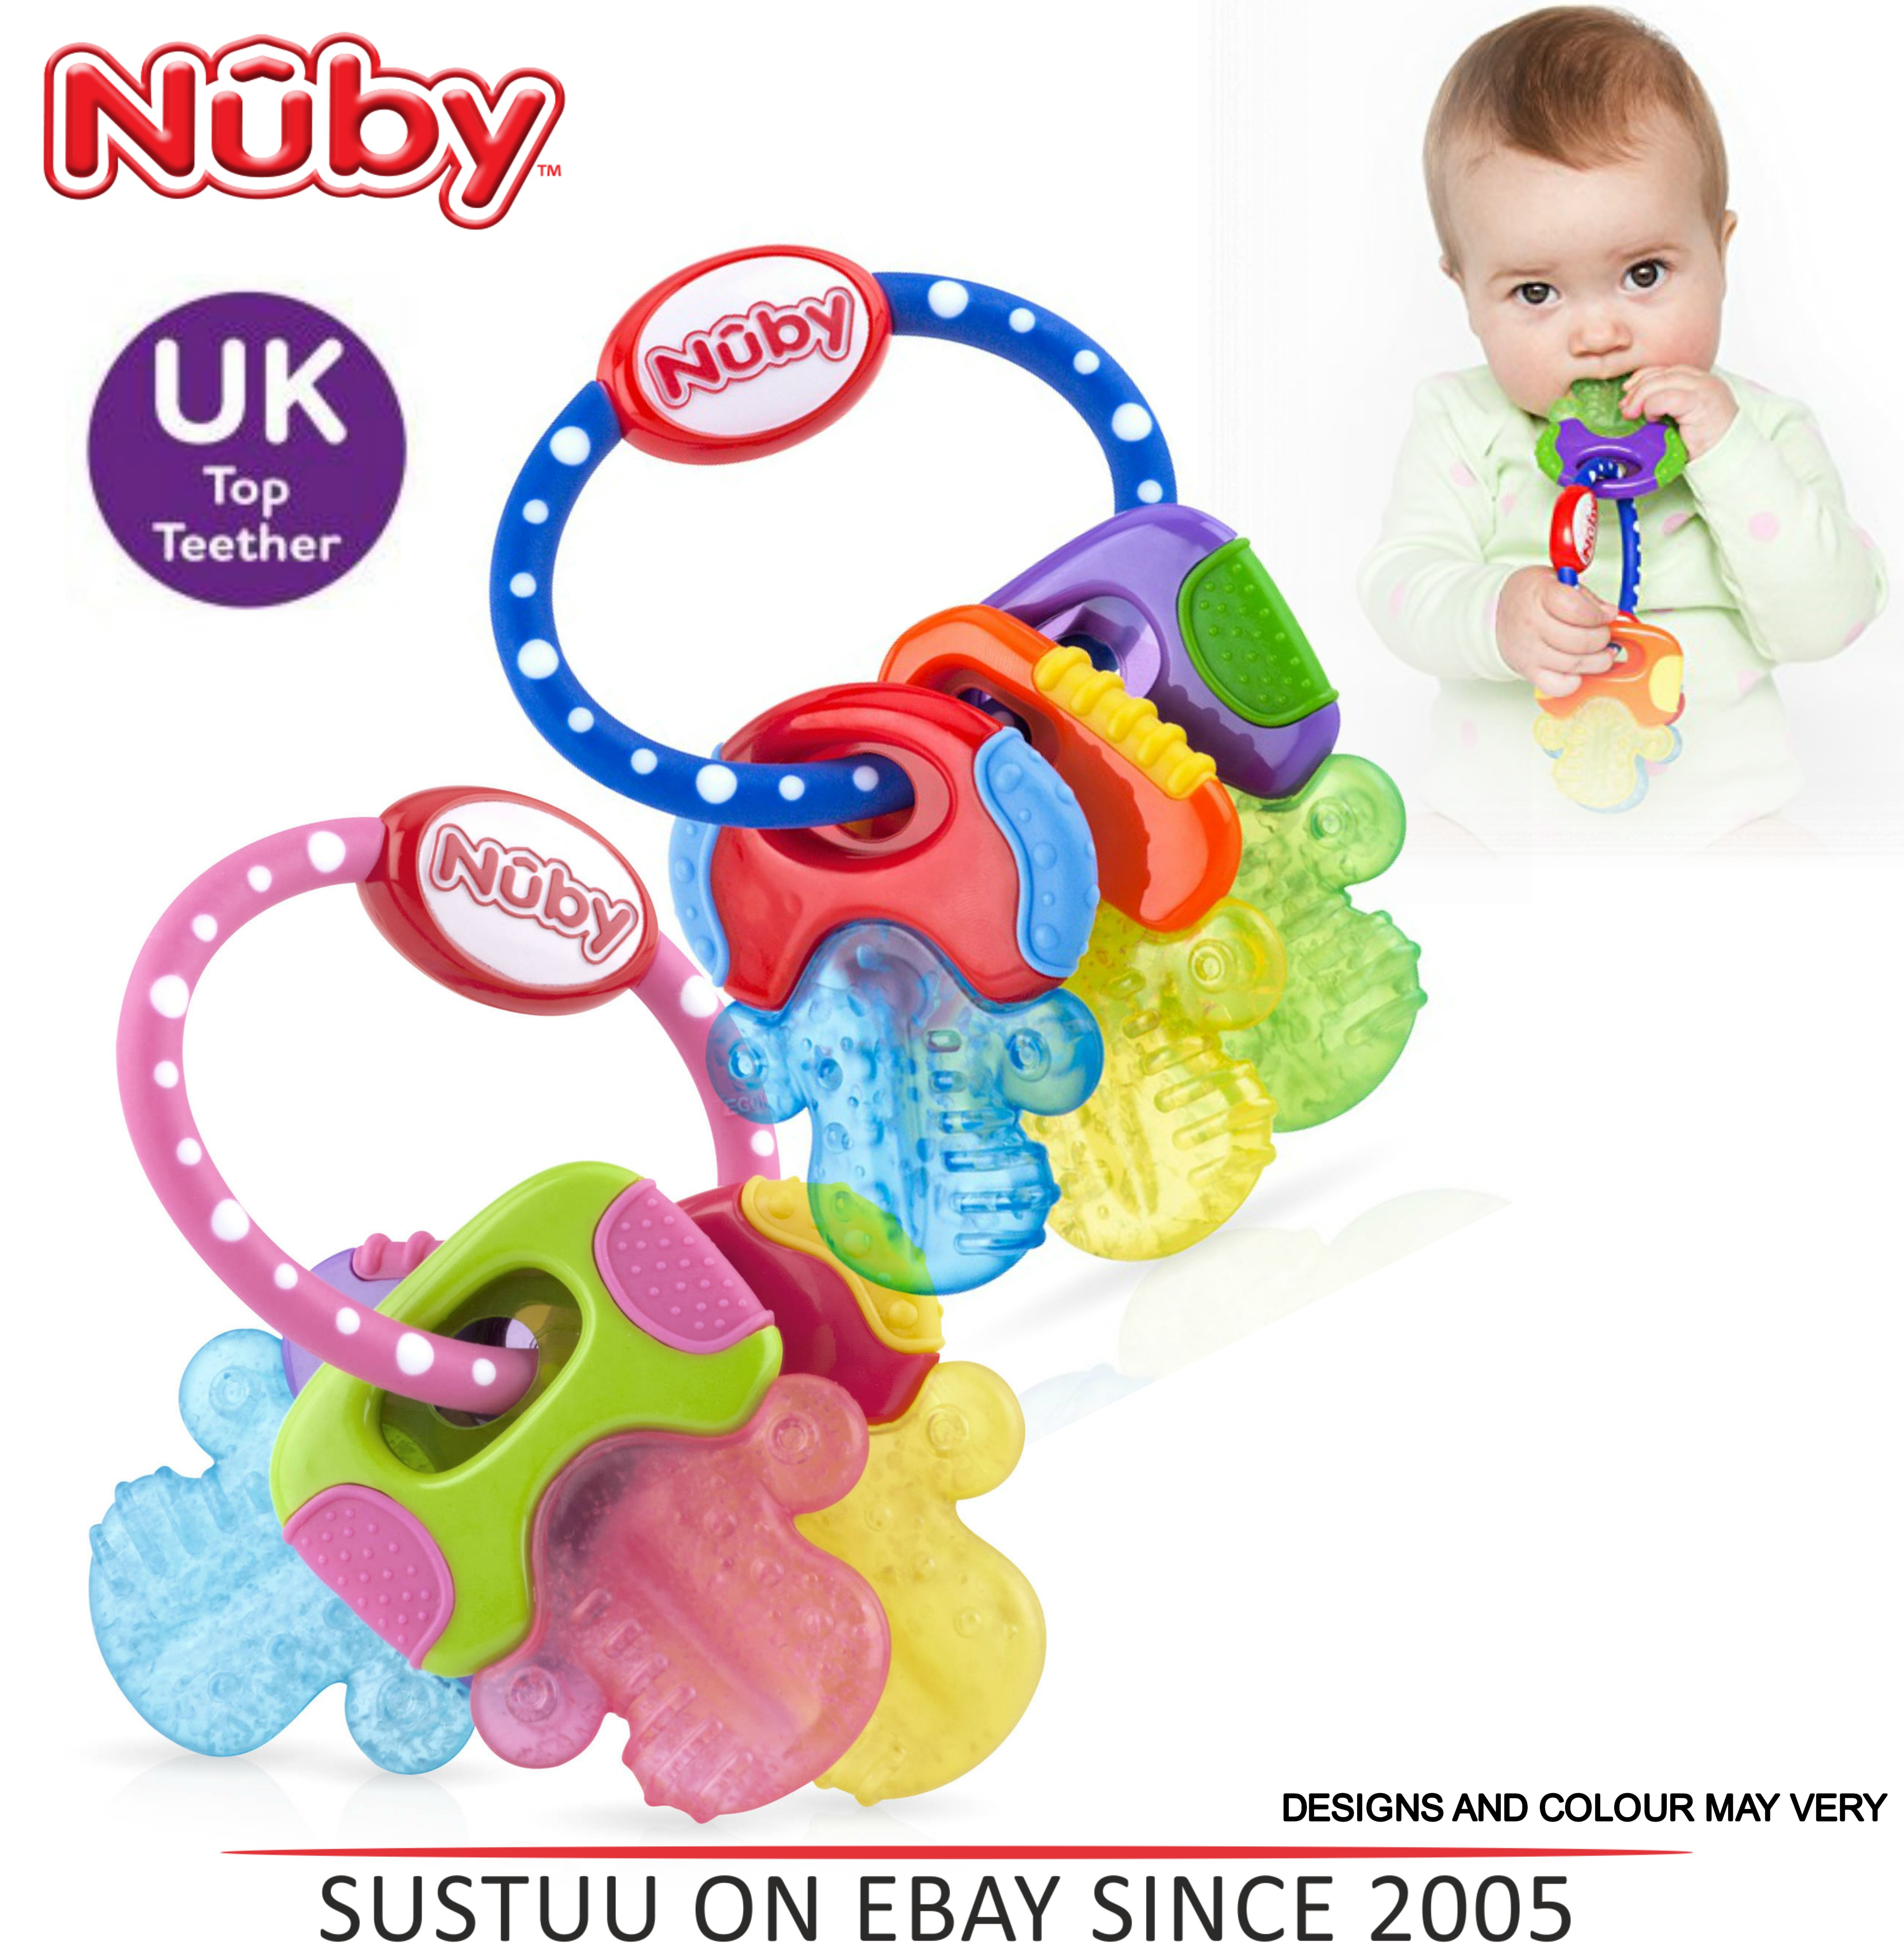 Nuby Icy Bite Keys Teether Non-toxic Pacifier Early Baby Teething Toy BPA Free